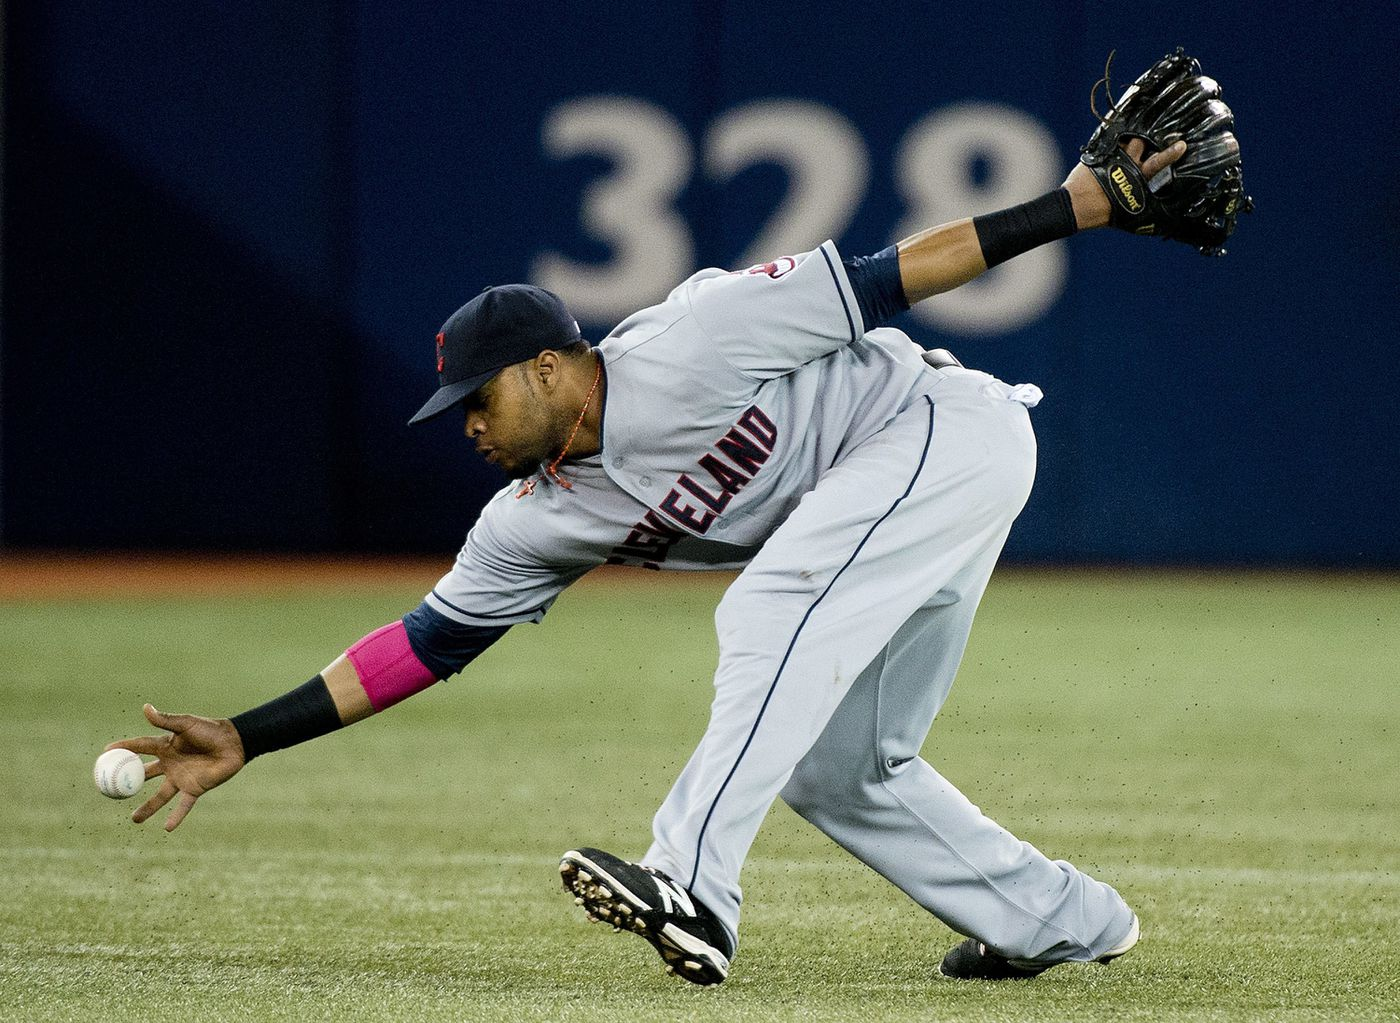 Cleveland Indians coach: Carlos Santana 'more prepared to be at third base now' for Phillies